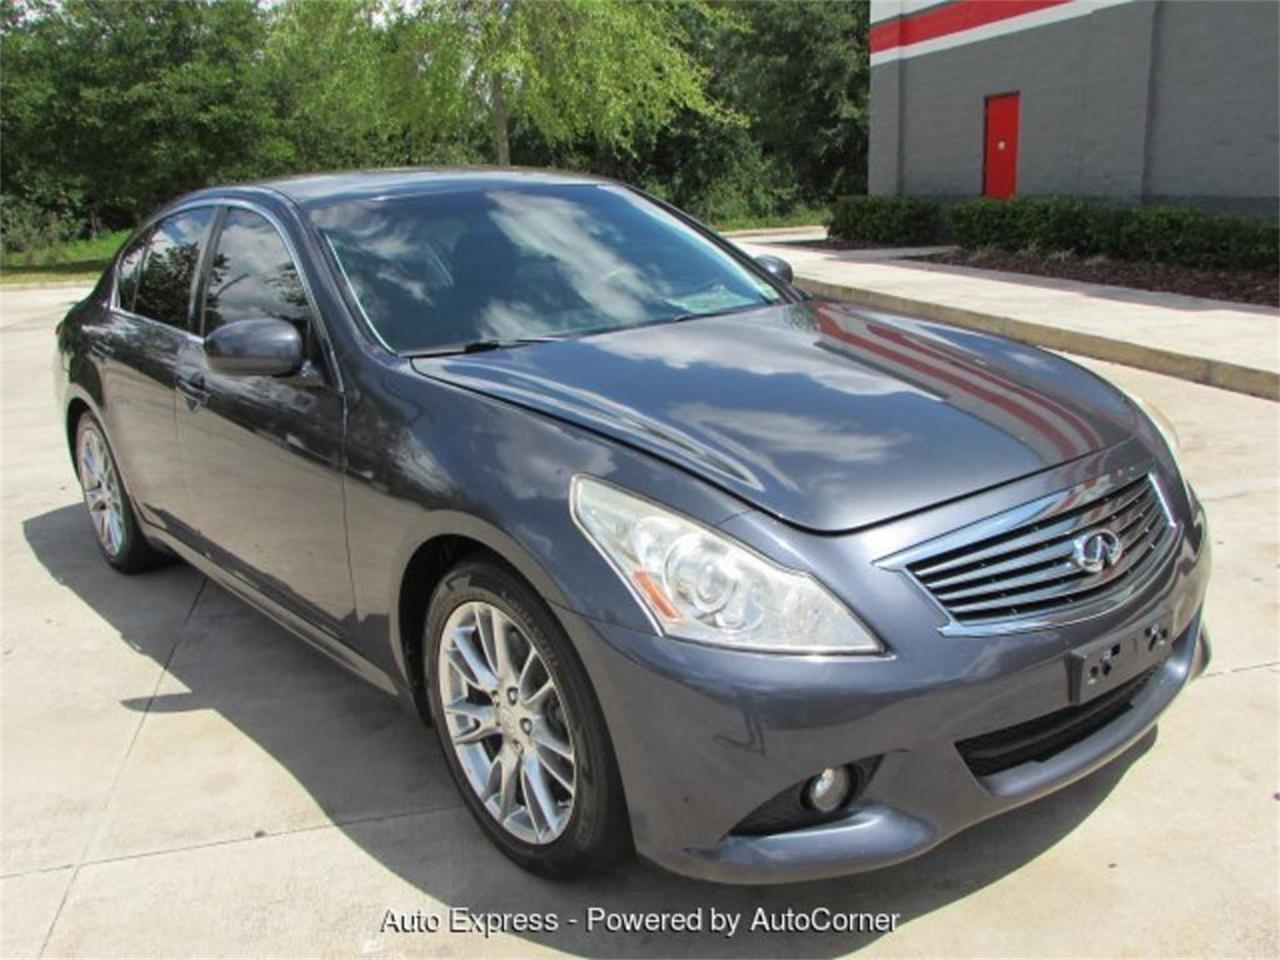 Large Picture of 2008 Infiniti G35 located in Orlando Florida - $8,999.00 - Q29A